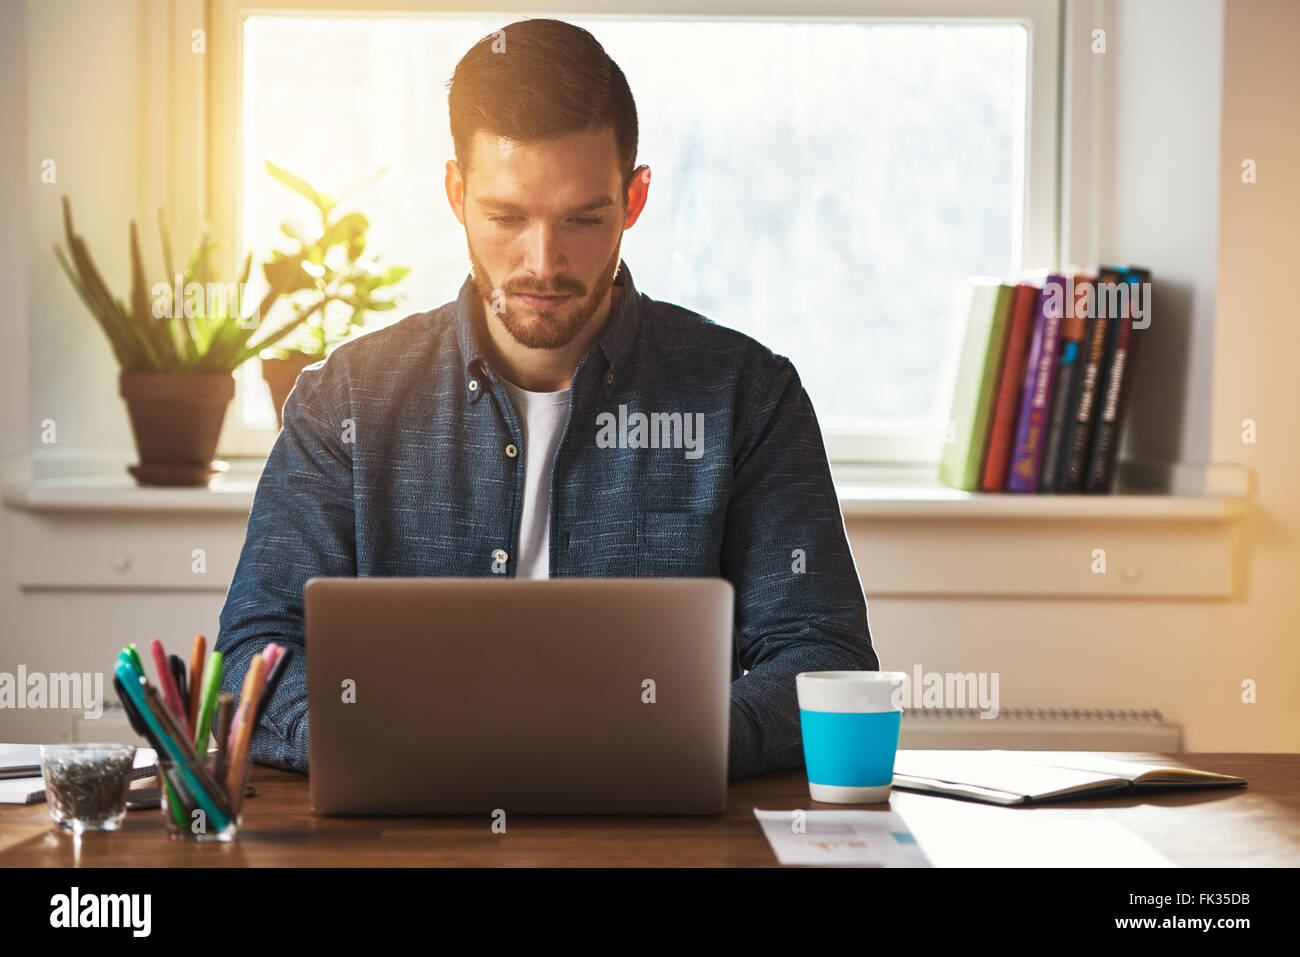 Entrepreneur working at a laptop computer typing or browsing the internet with an intense engrossed expression - Stock Image